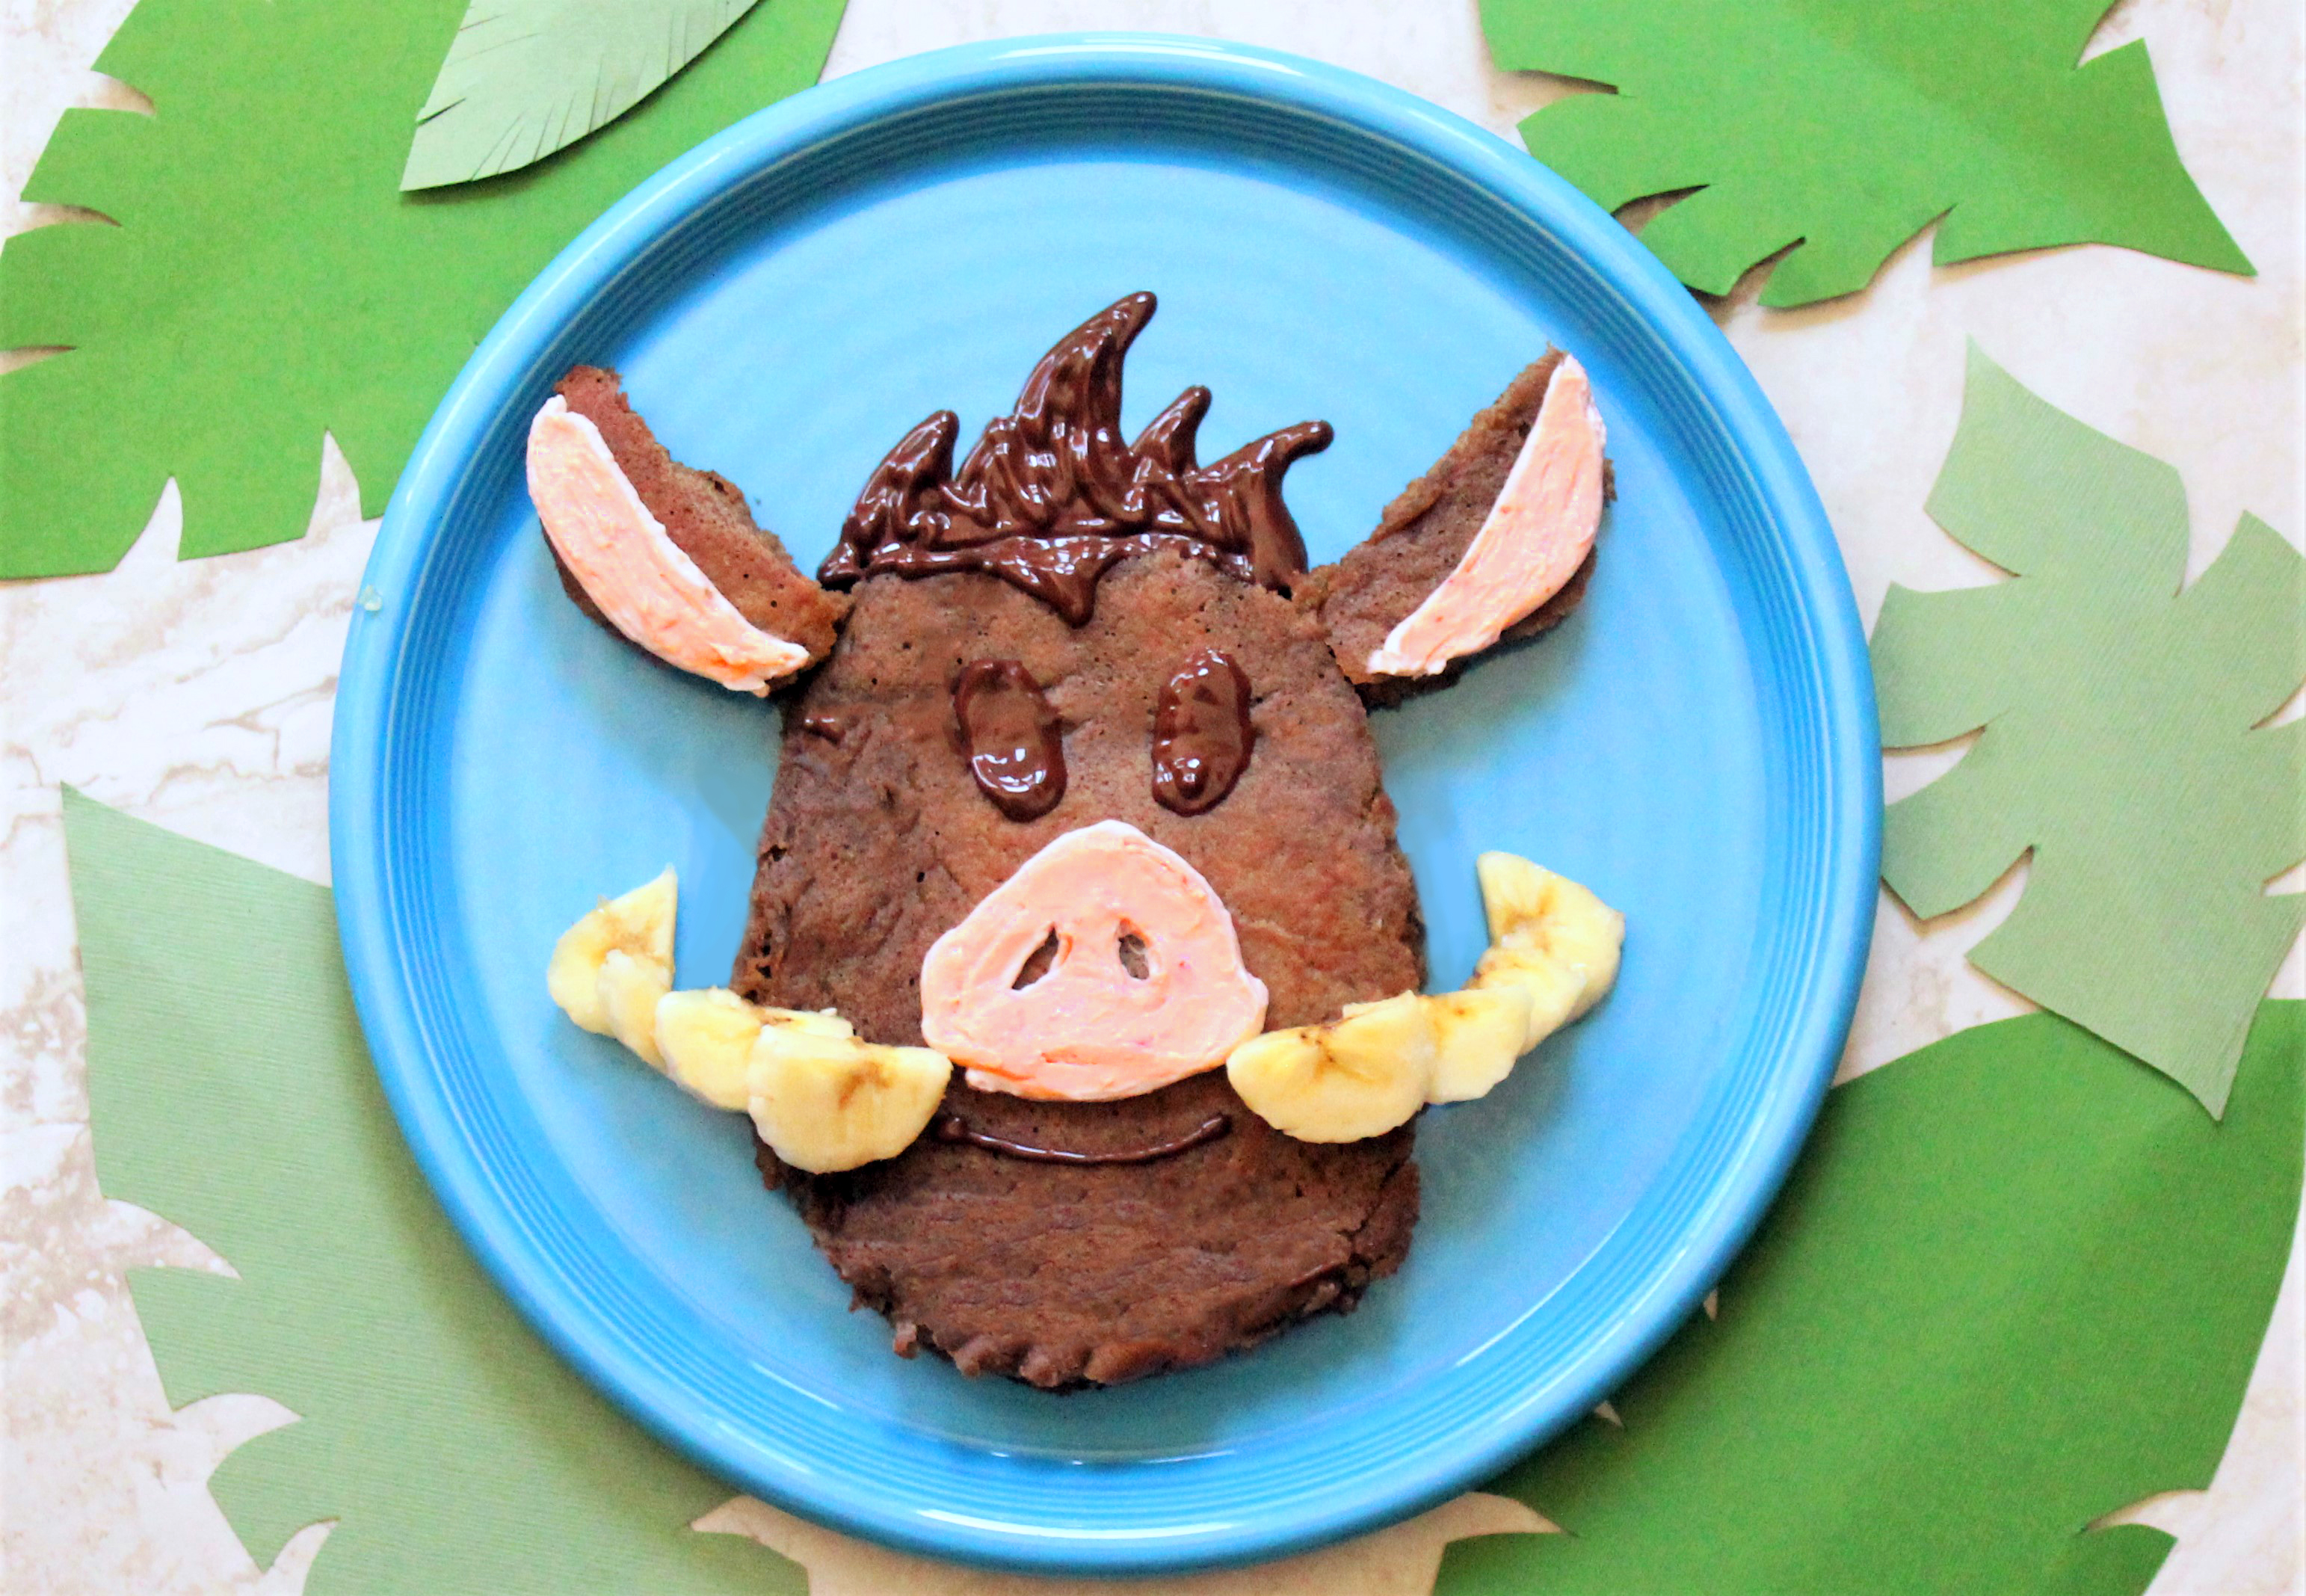 Healthy Chocolate Pancakes - Lion King inspired recipe - DIsney Emoji Pancakes! Pumba healthy chocolate pancakes